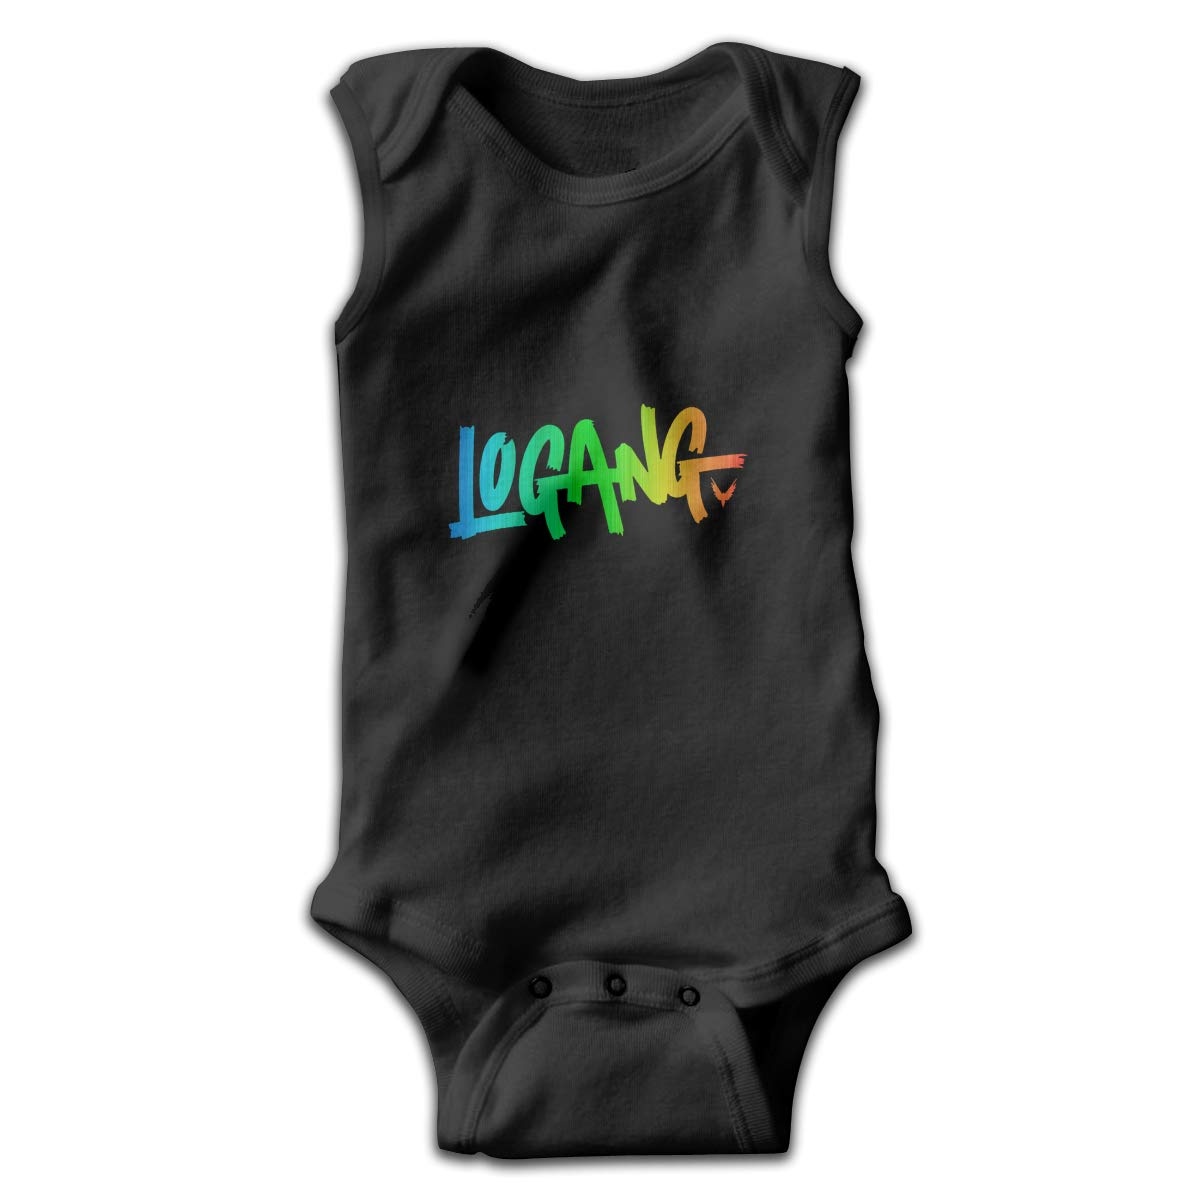 Logan Logang Followers Parrot Icon 5 Sleeveless Onesies Outfits